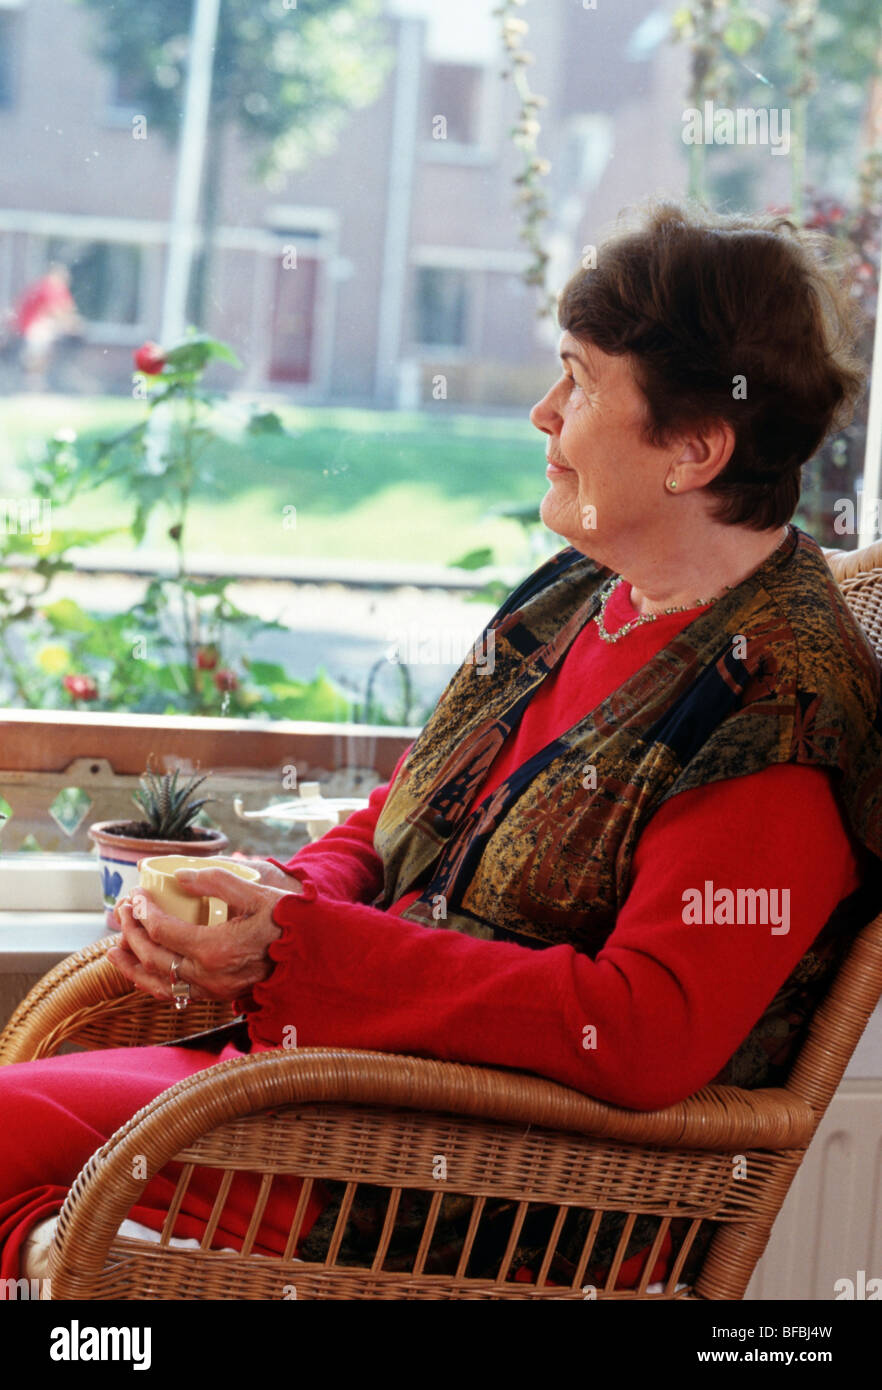 Female pensioner sitting on chair looking out of window, cup of coffee in hands, thinking Stock Photo